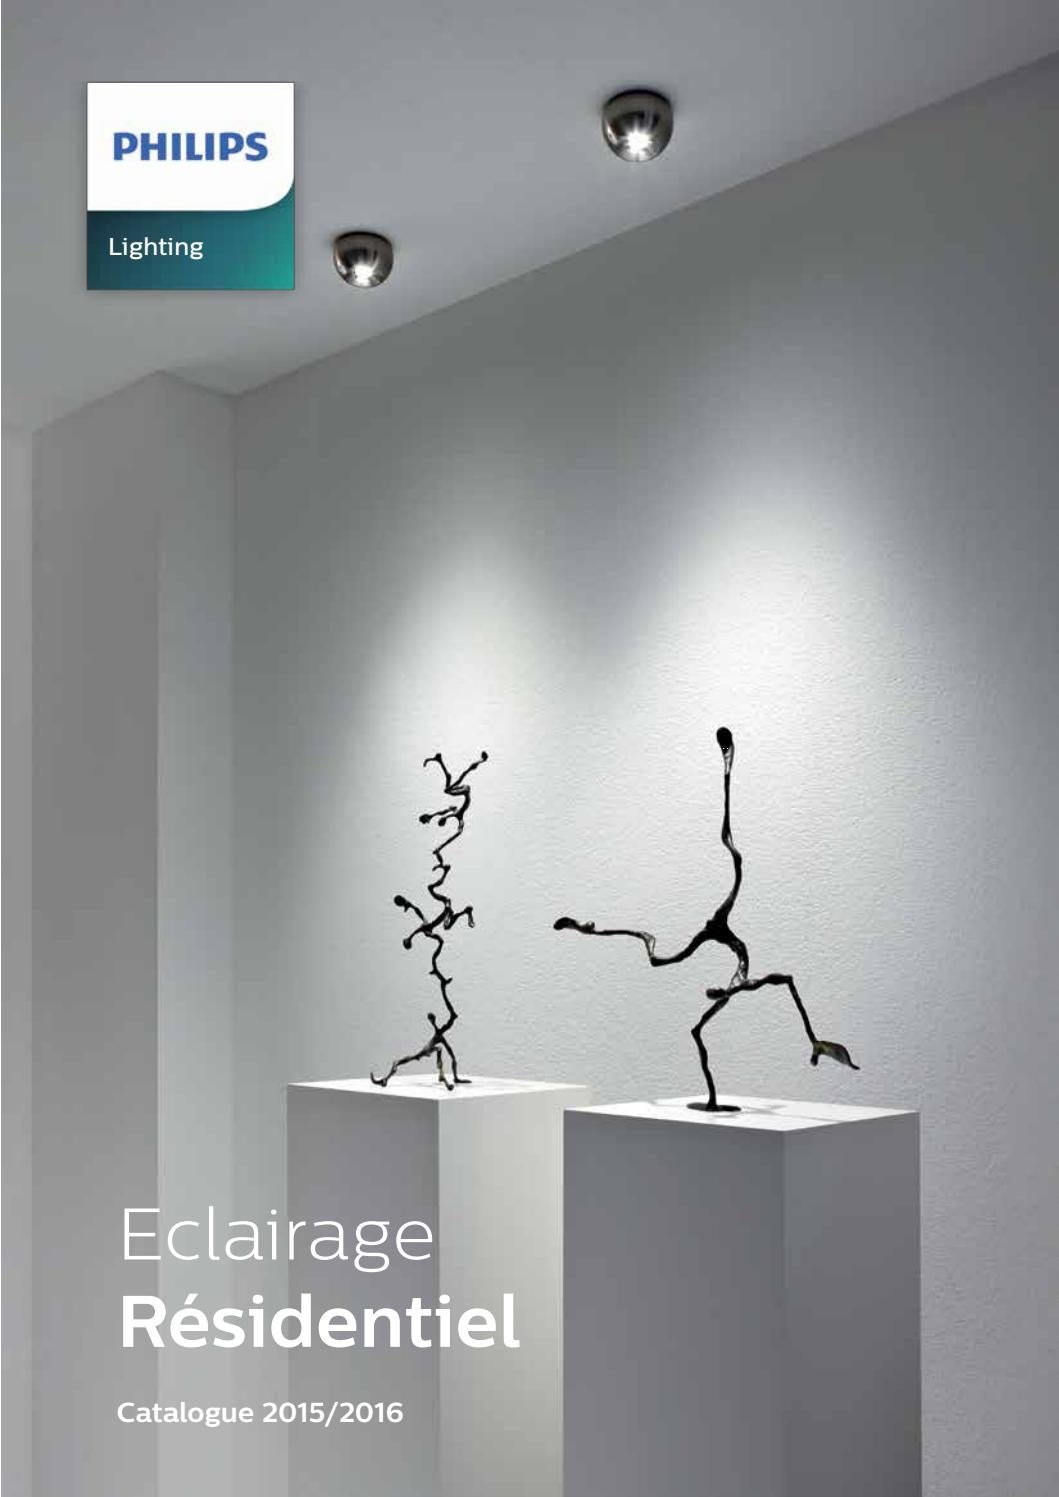 Philips Luminaire Extérieur Applique Murale Hazel Anthracite Philips Residentiel 2016 By Flament Nicolas Issuu